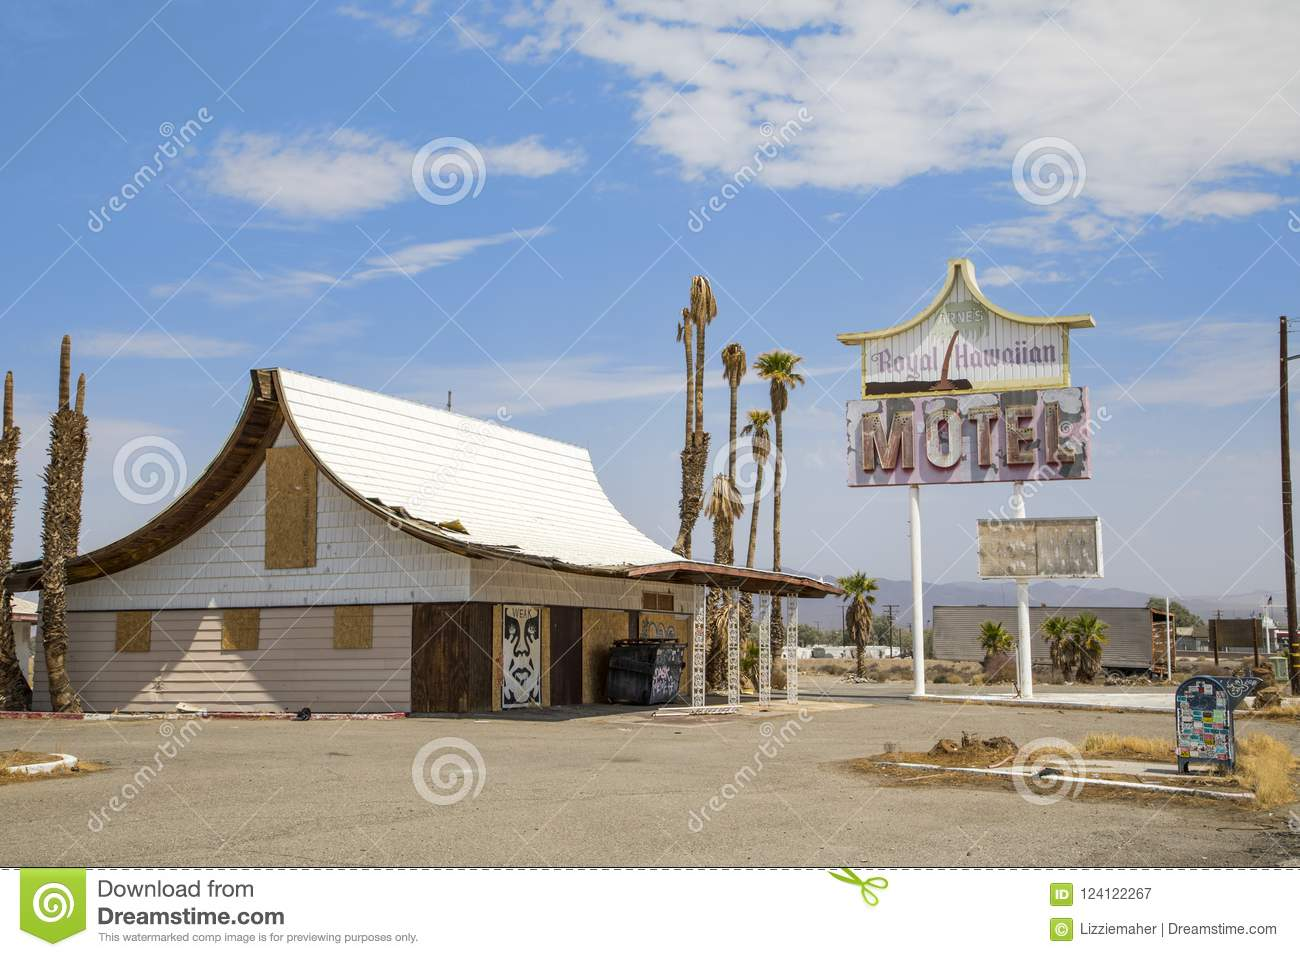 Arne`s Royal Hawaiian Motel, Baker, CA Editorial Photography - Image